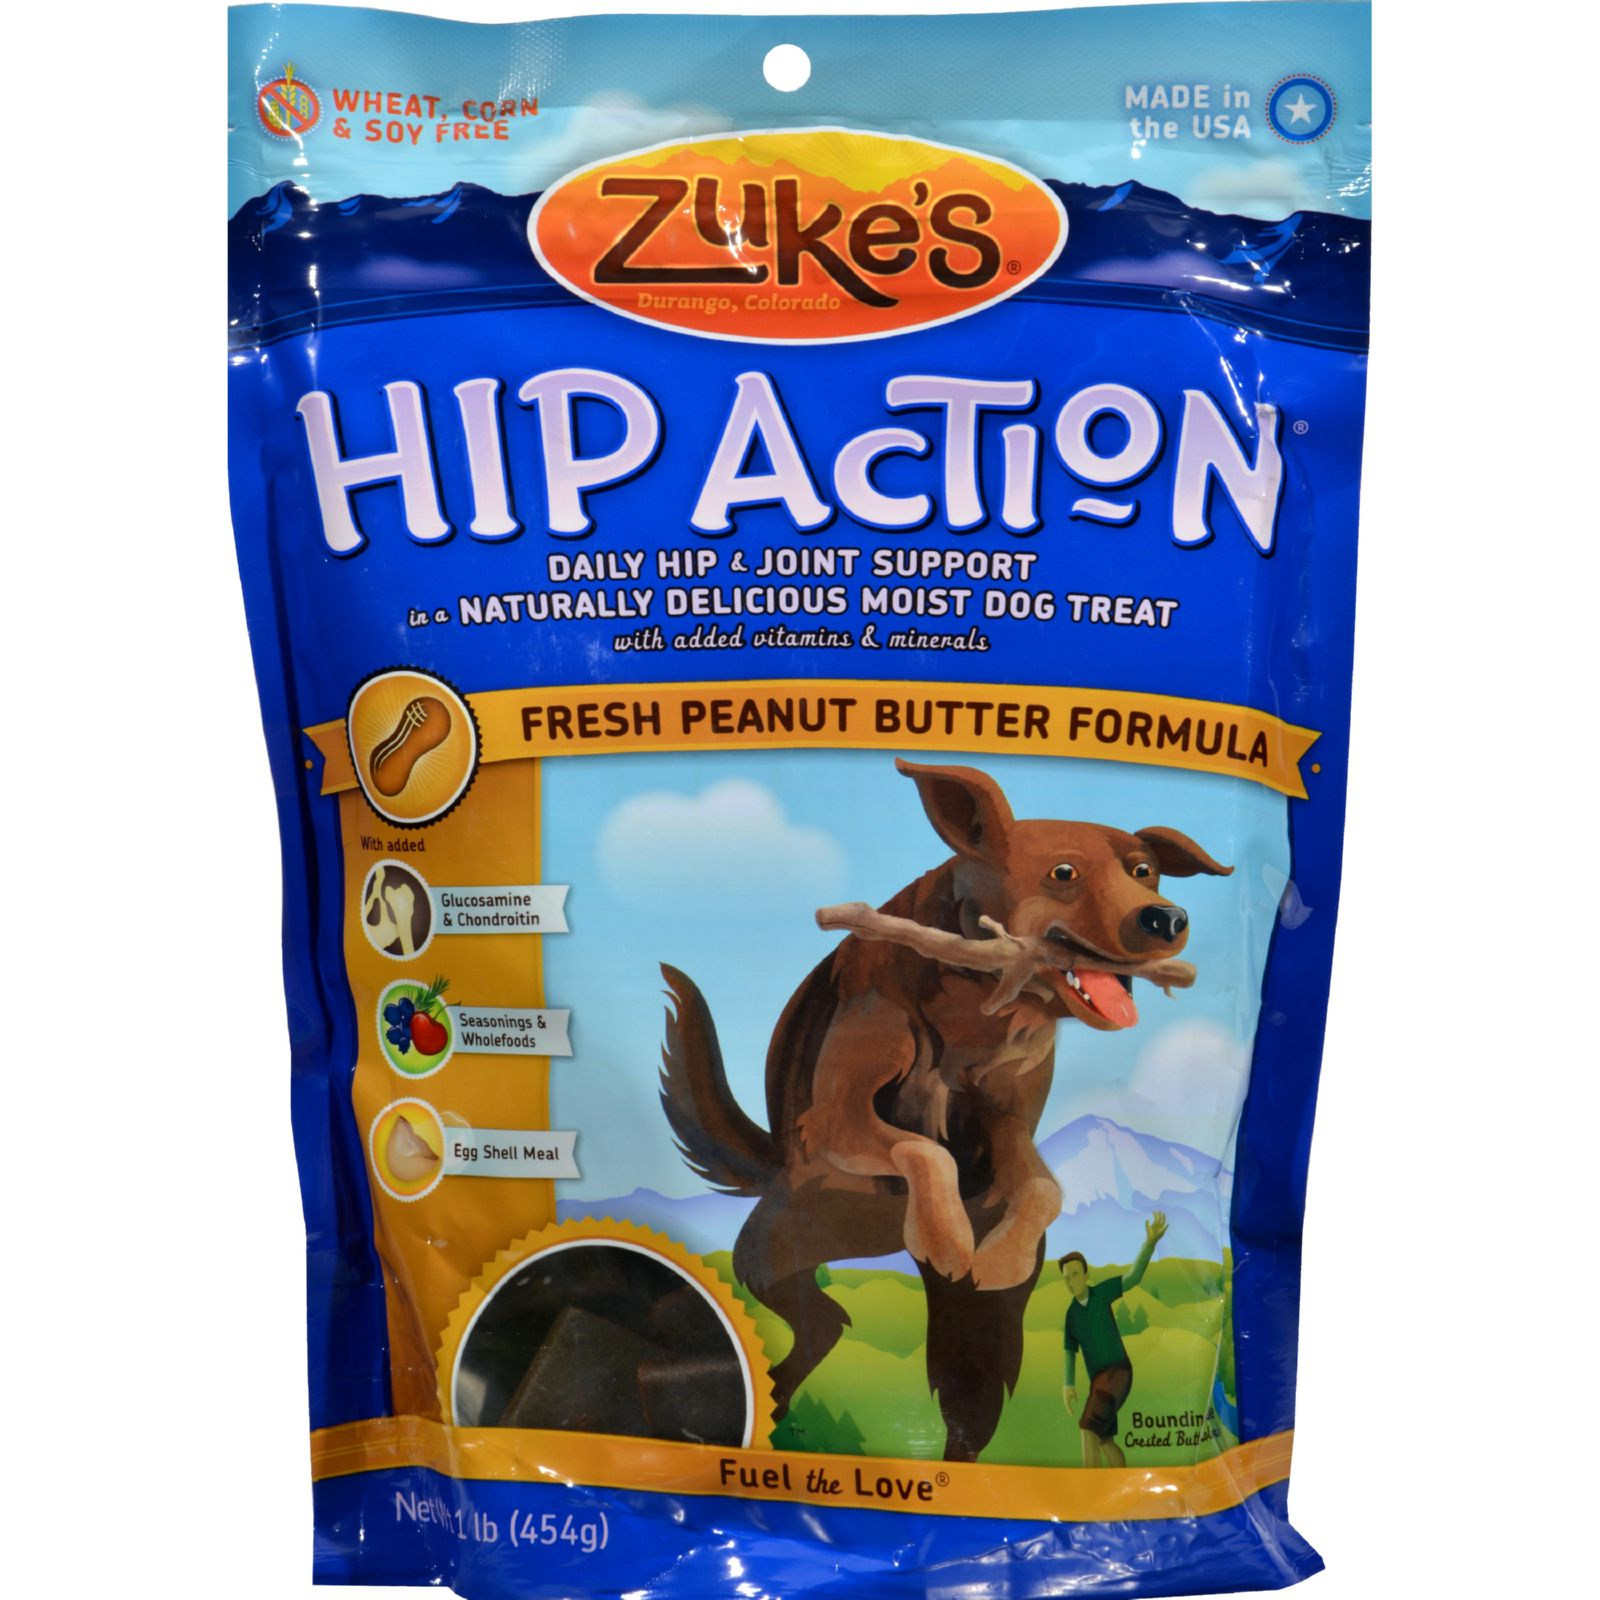 Zuke's - Hip Action - Peanut Butter And Oats Recipe - 1 Lb.